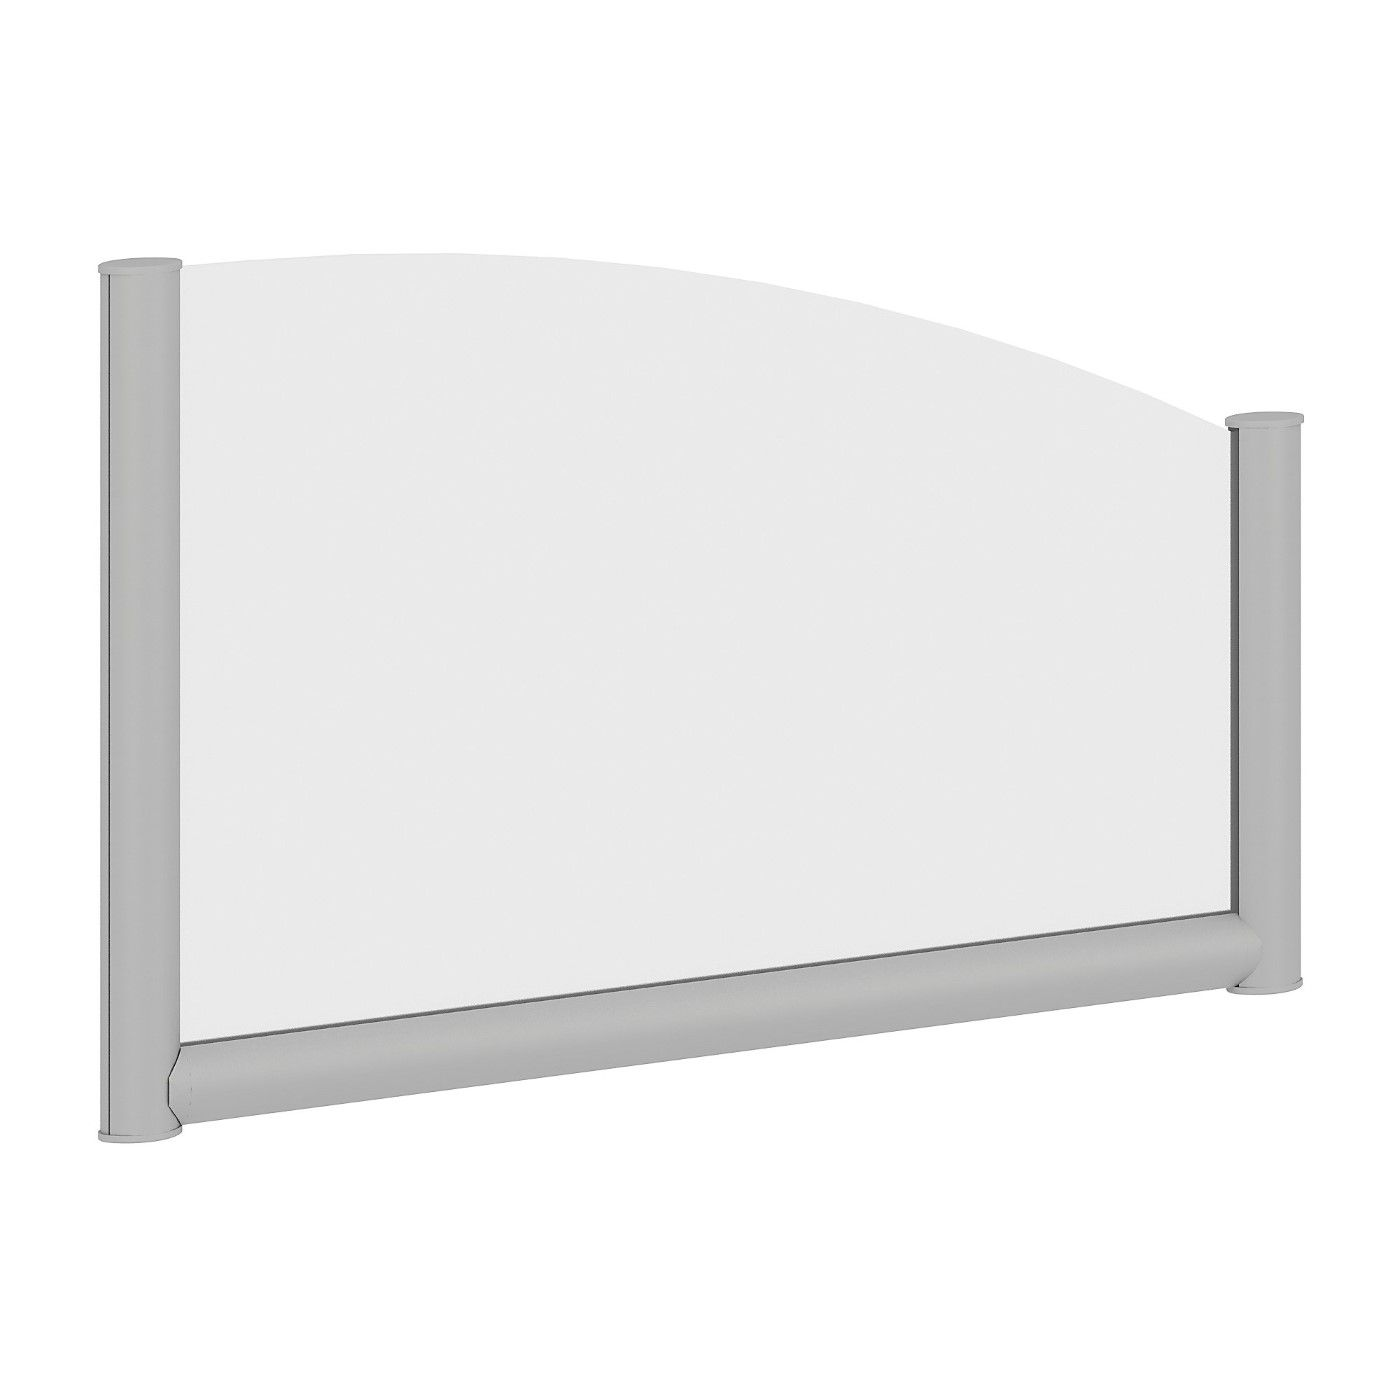 BUSH BUSINESS FURNITURE 30W DESK DIVIDER PRIVACY PANEL. FREE SHIPPING SALE DEDUCT 10% MORE ENTER '10percent' IN COUPON CODE BOX WHILE CHECKING OUT. ENDS 5-31-20.